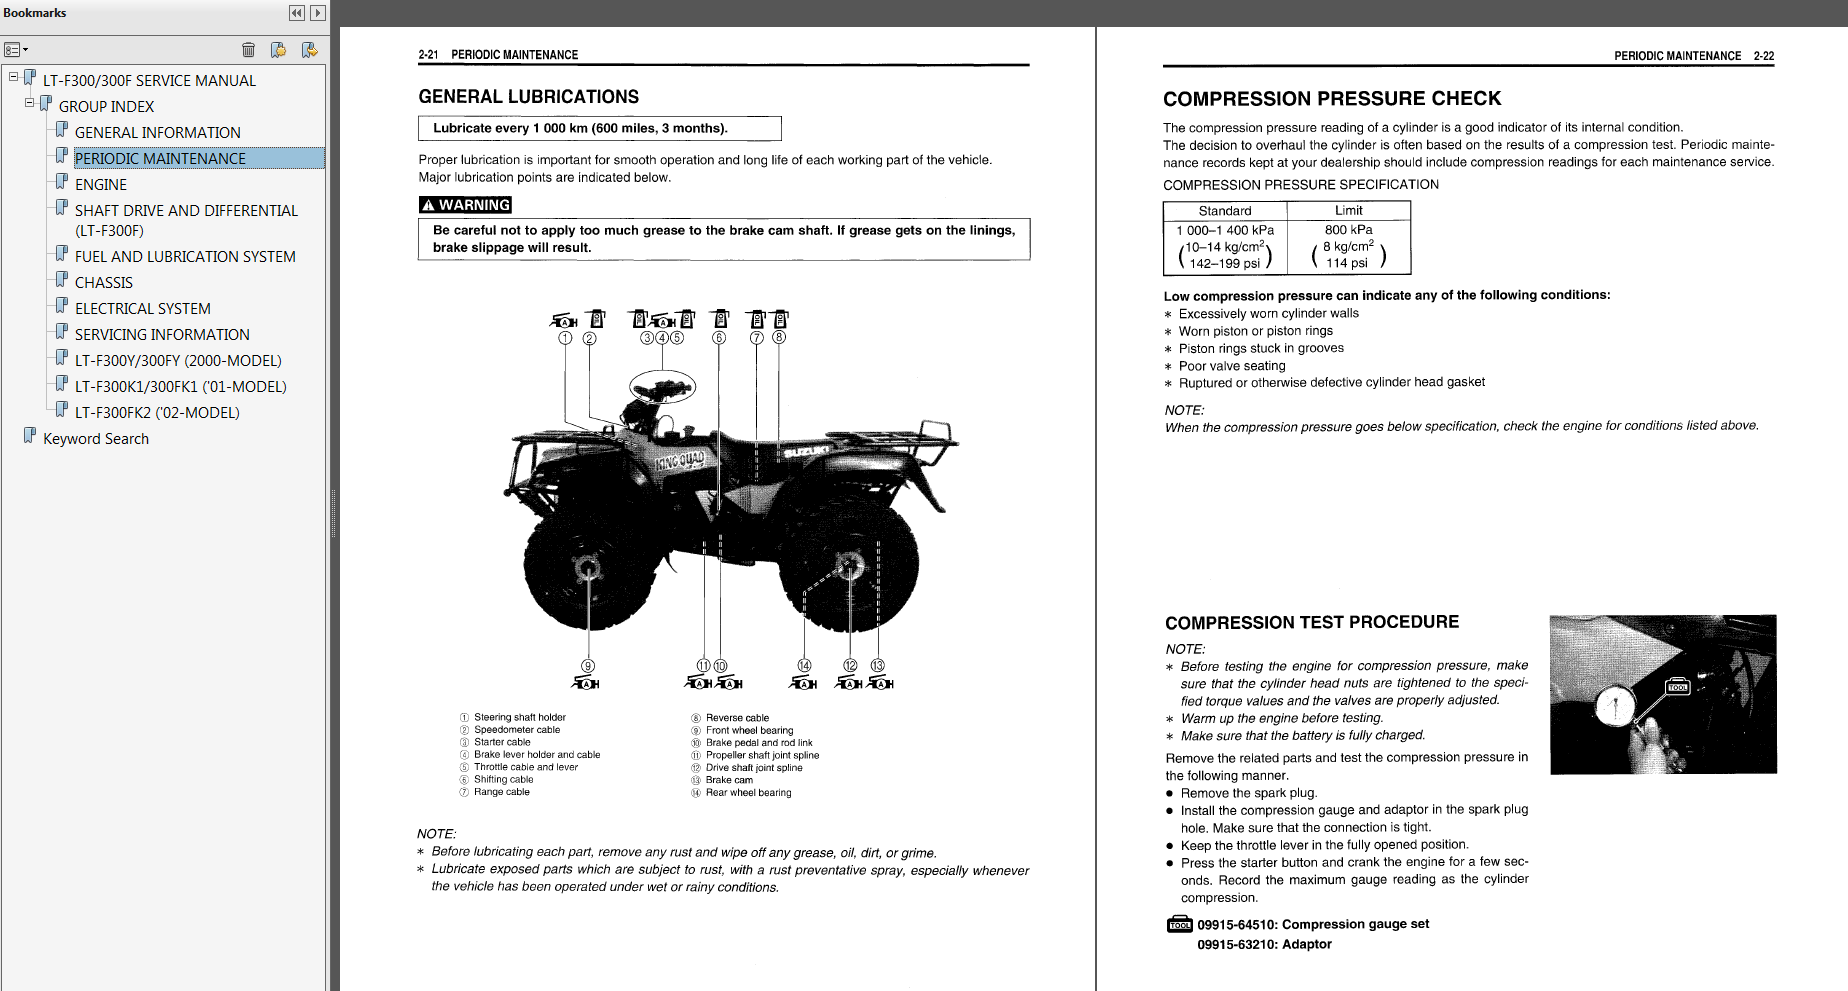 1999-2002 Suzuki LT-F300, LT-F300F King Quad Service Repair Manual |  MyATVManual.com